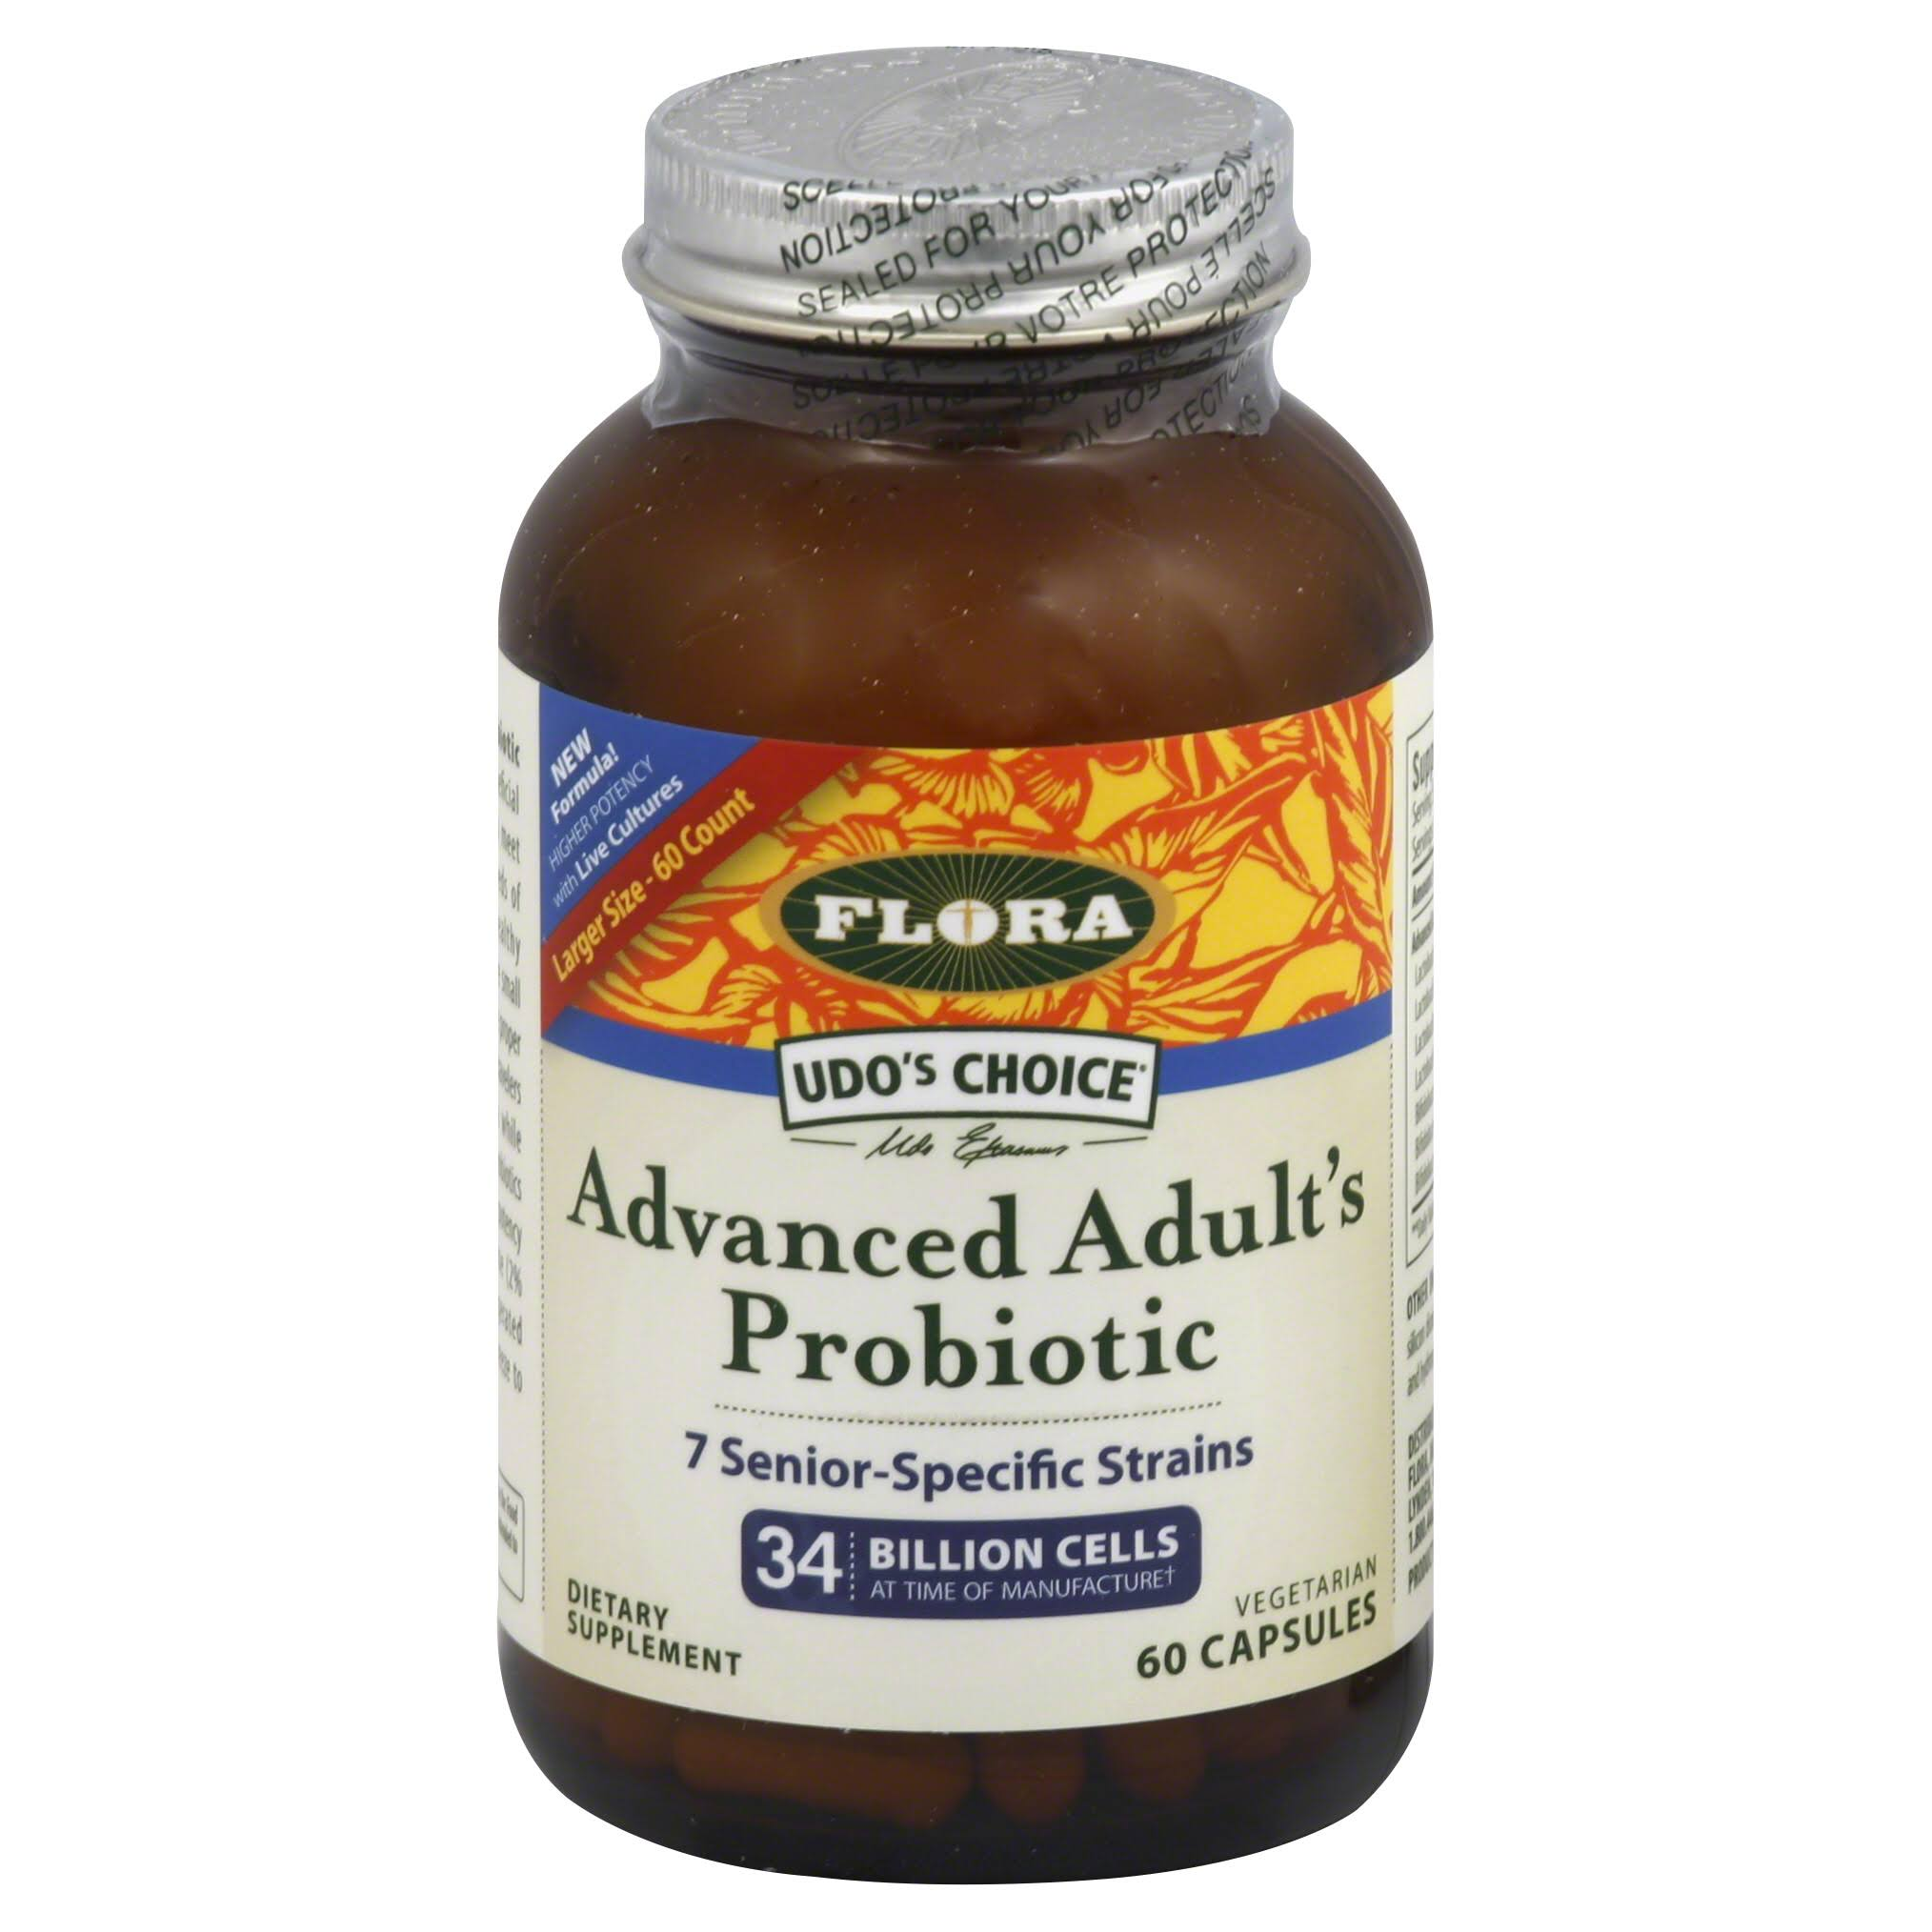 Udo's Choice Advanced Adult's Probiotic Dietary Supplement - 60 Capsules